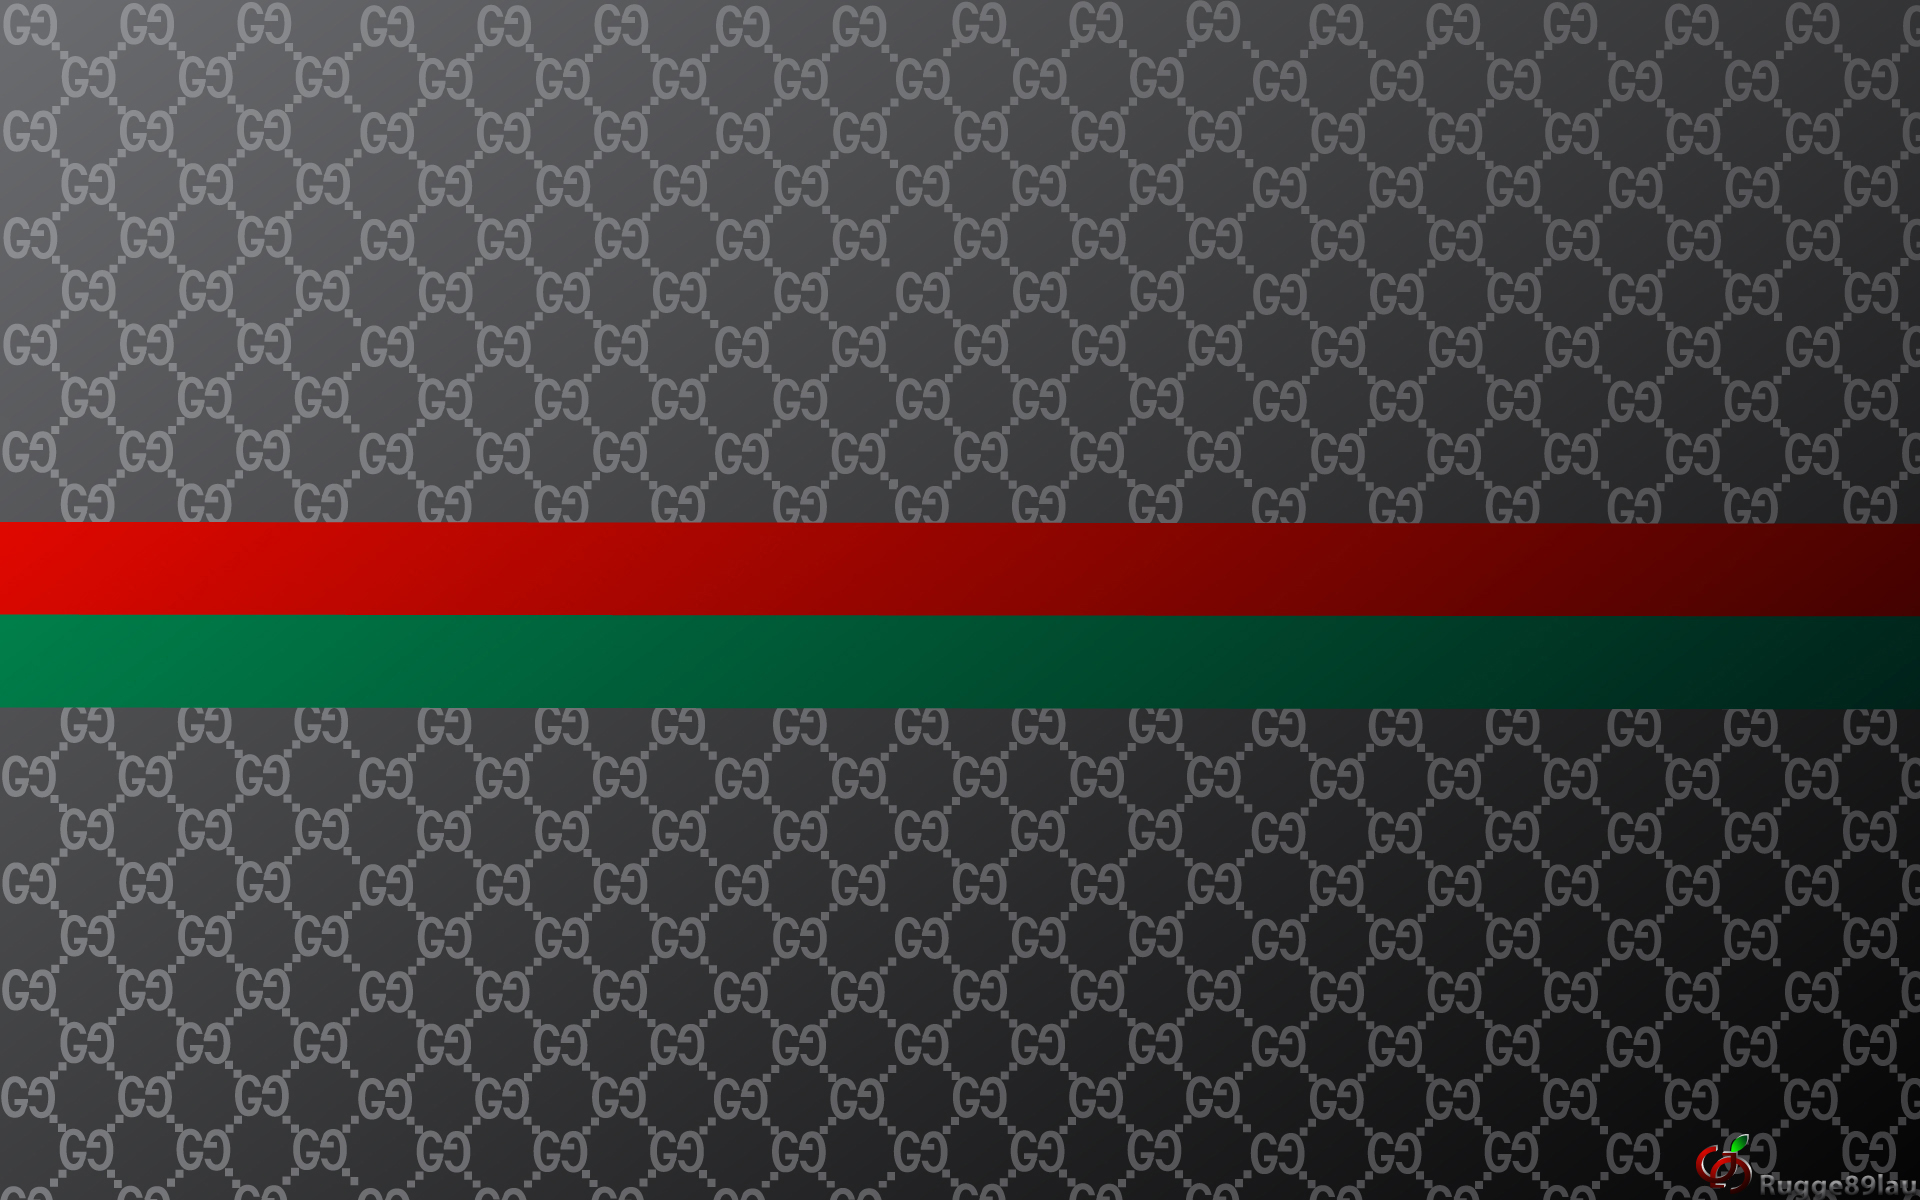 Gucci hd wallpapers hd wallpapers for Site wallpaper hd